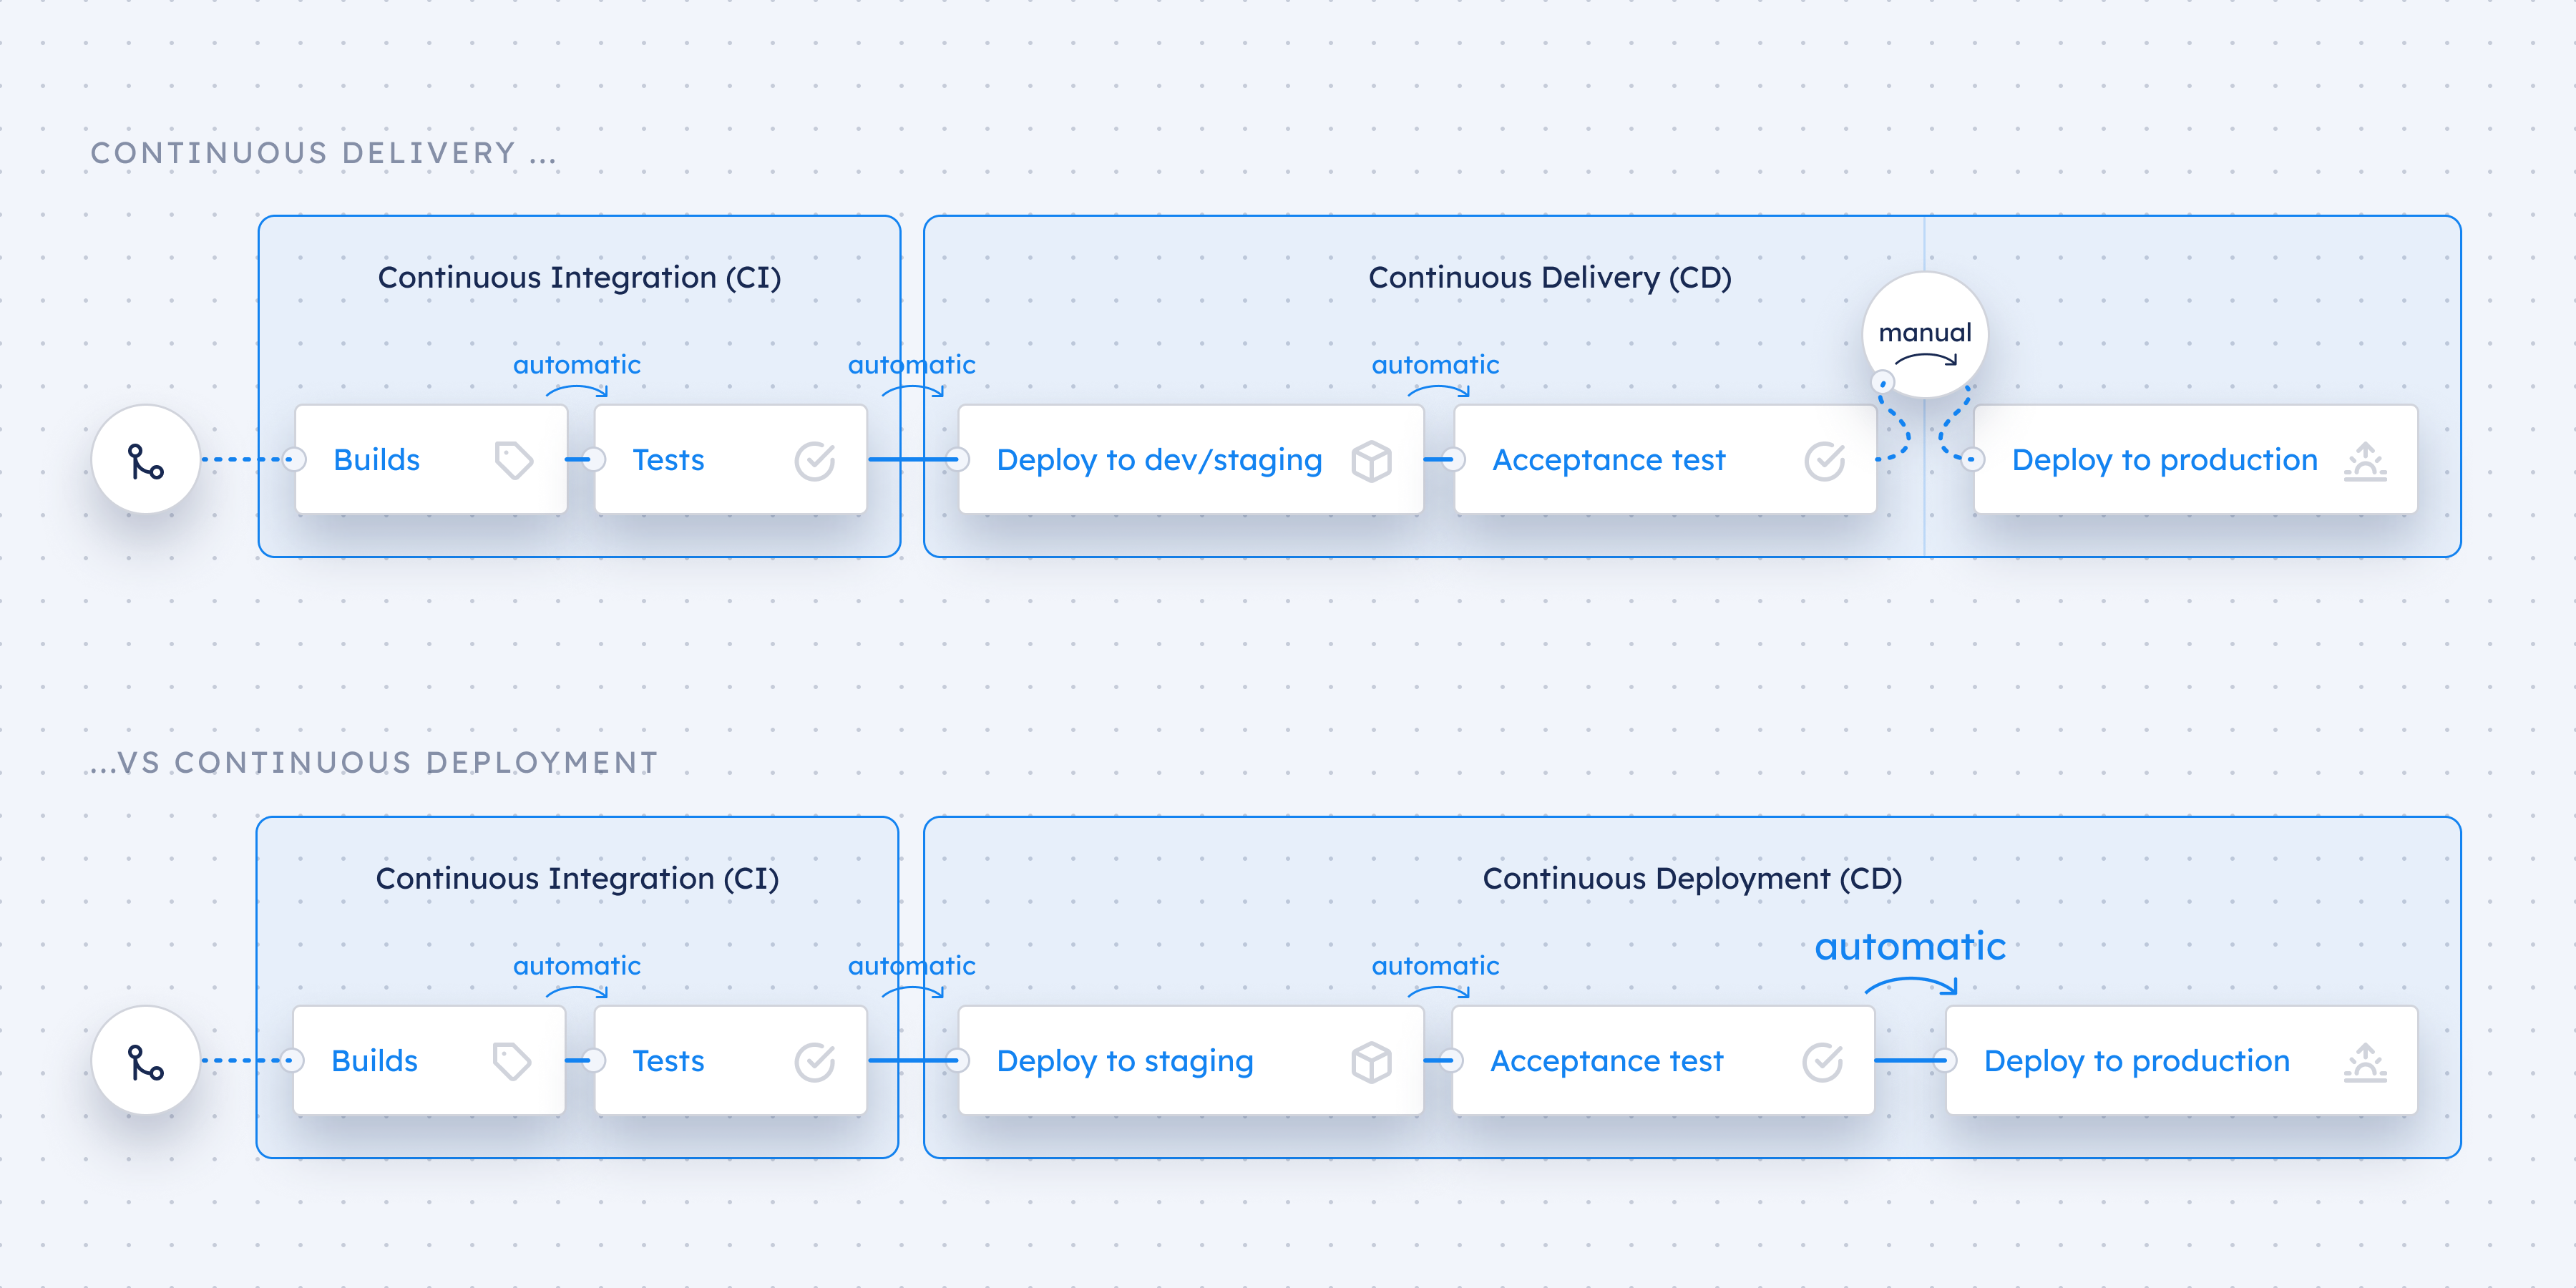 Continuous Integration (CI), Delivery (CD), Deployment (CD): What's the difference?